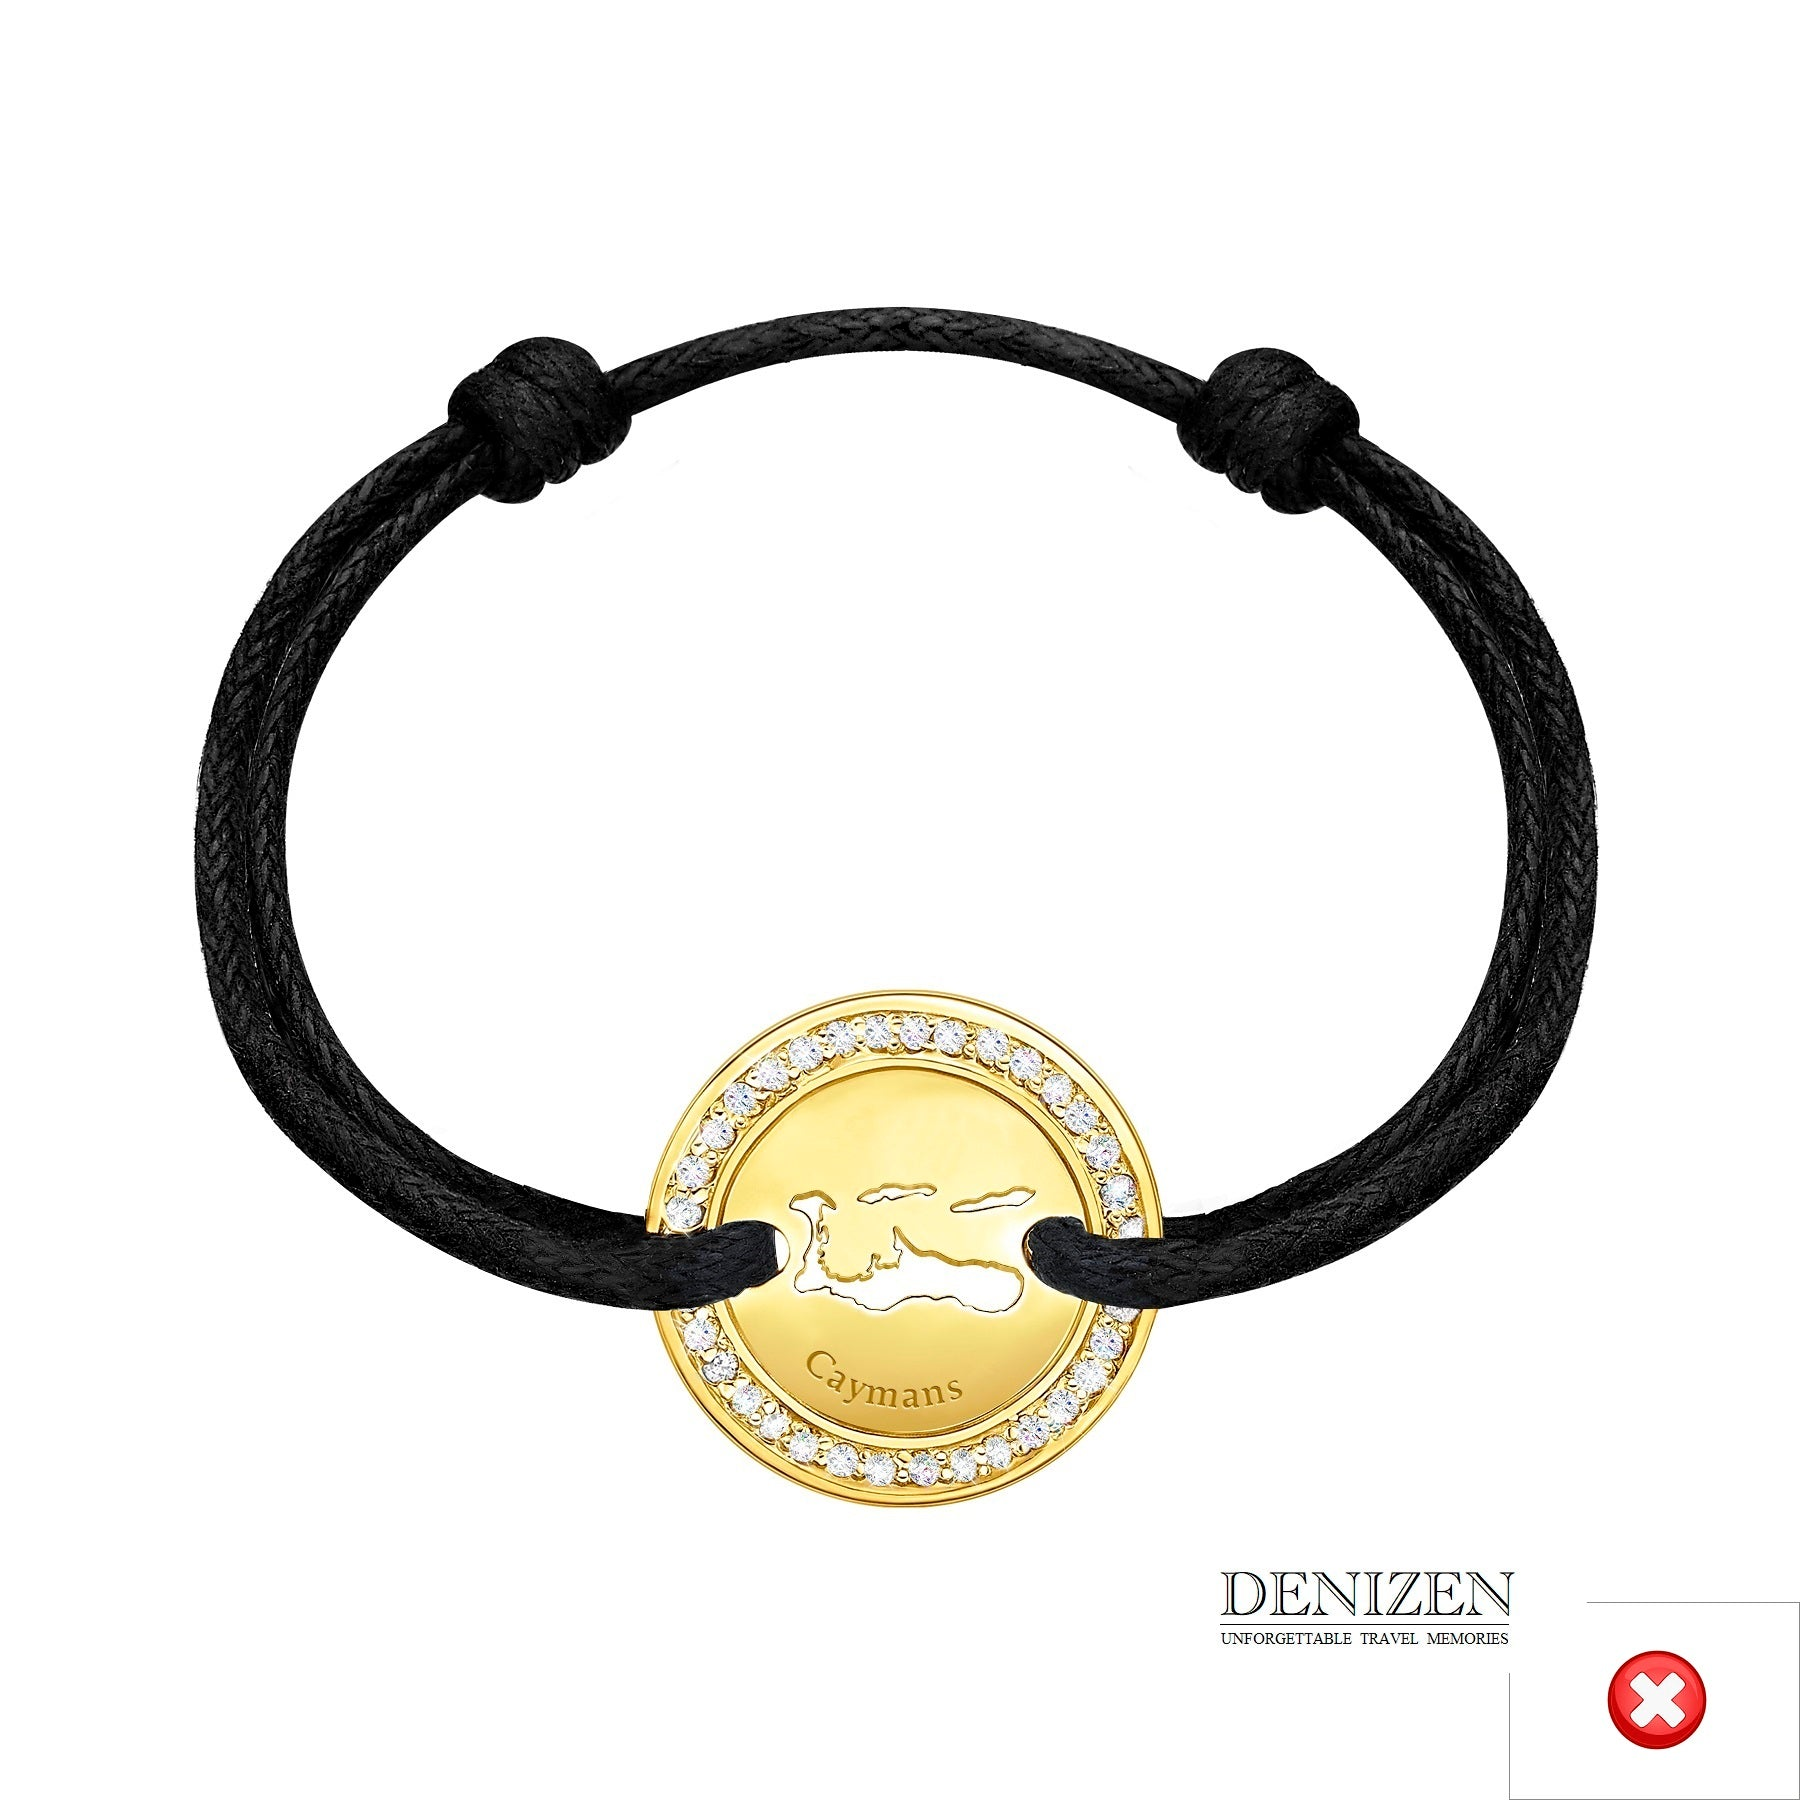 DENIZEN Bracelet black color string ref. 132